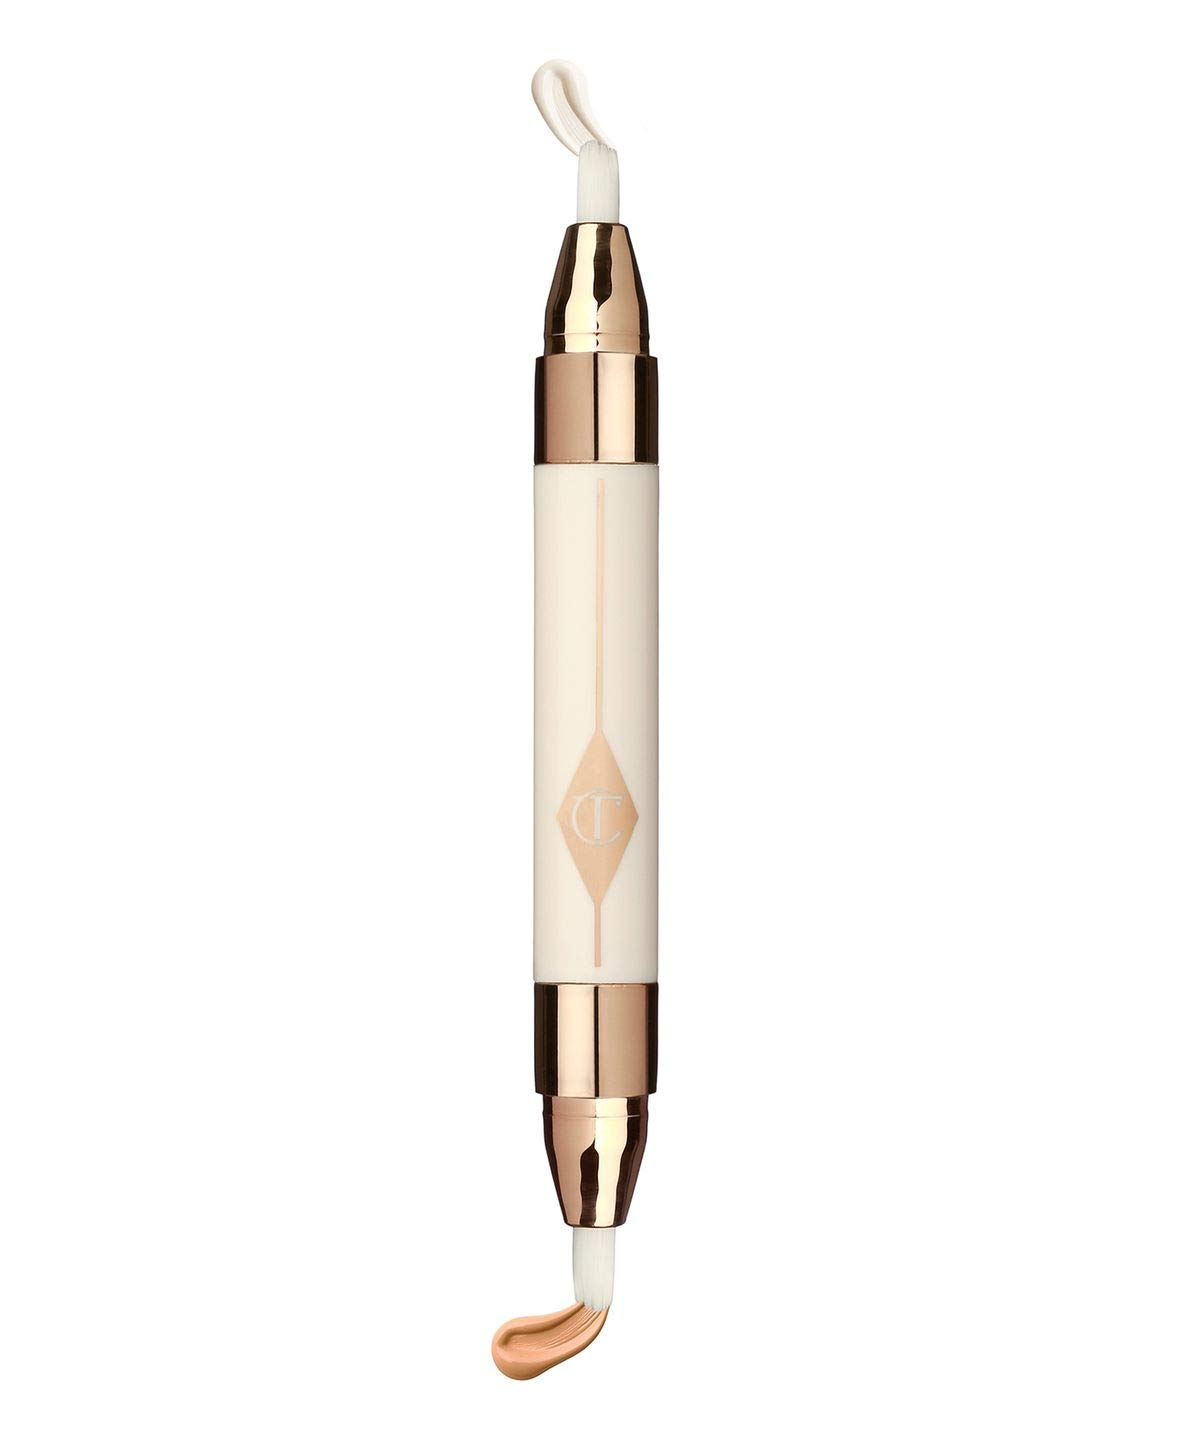 Charlotte Tilbury Mini Miracle Eye Wand Dynamic Duo Lift & Illuminate Light Reflector - Shade 1